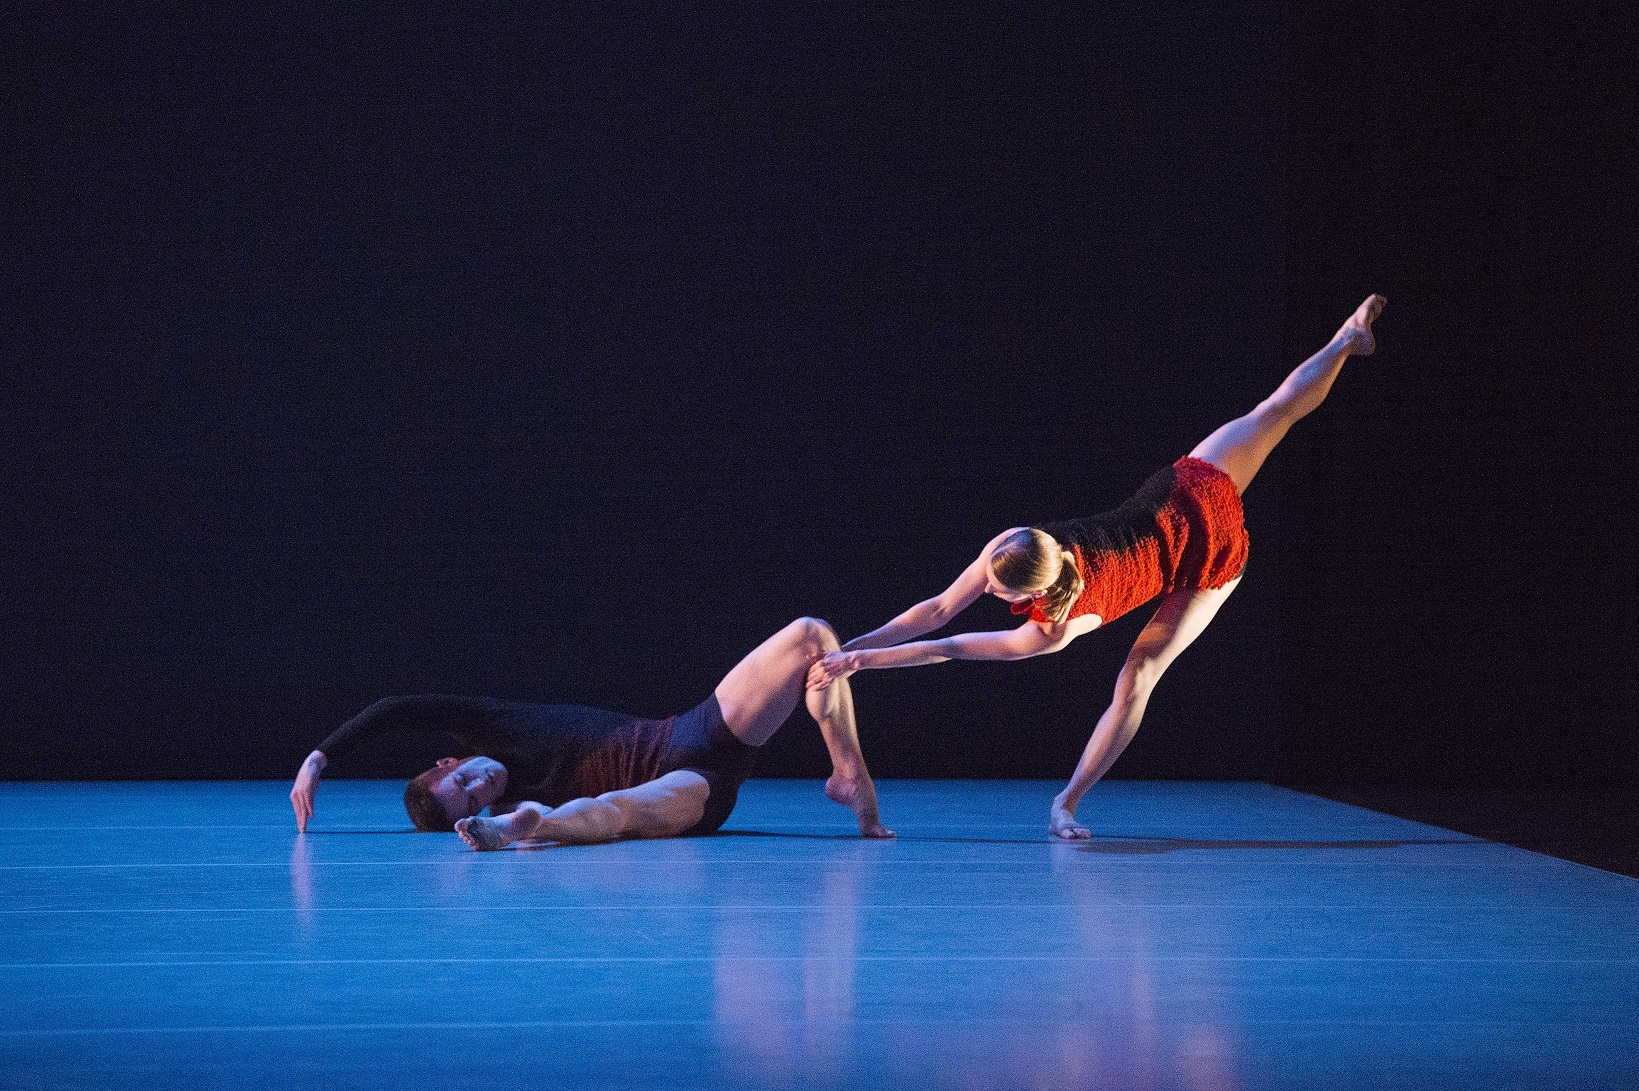 A Resilient Strength: Injuries That Affect Dancers and How to Prevent Them